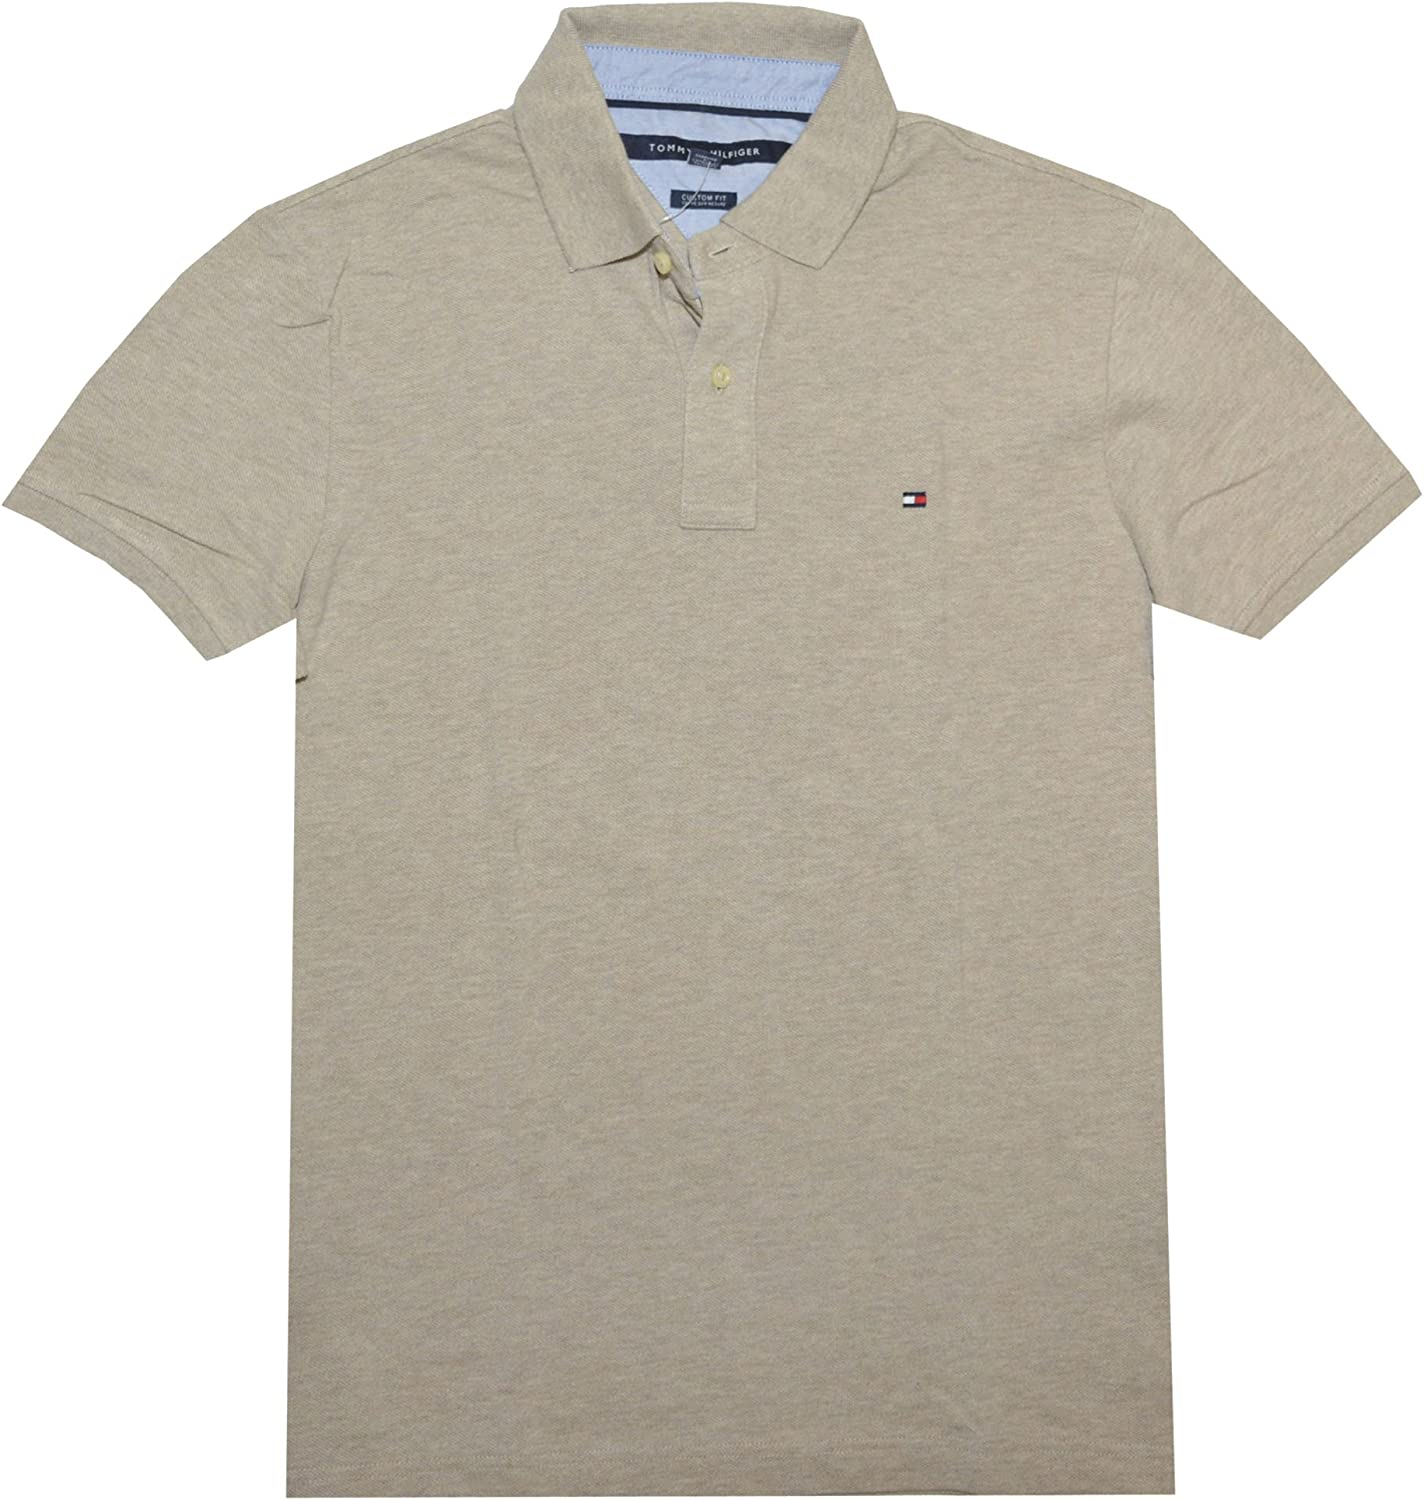 Tommy Hilfiger - Polo para Hombre (Talla XL), Color Beige: Amazon ...